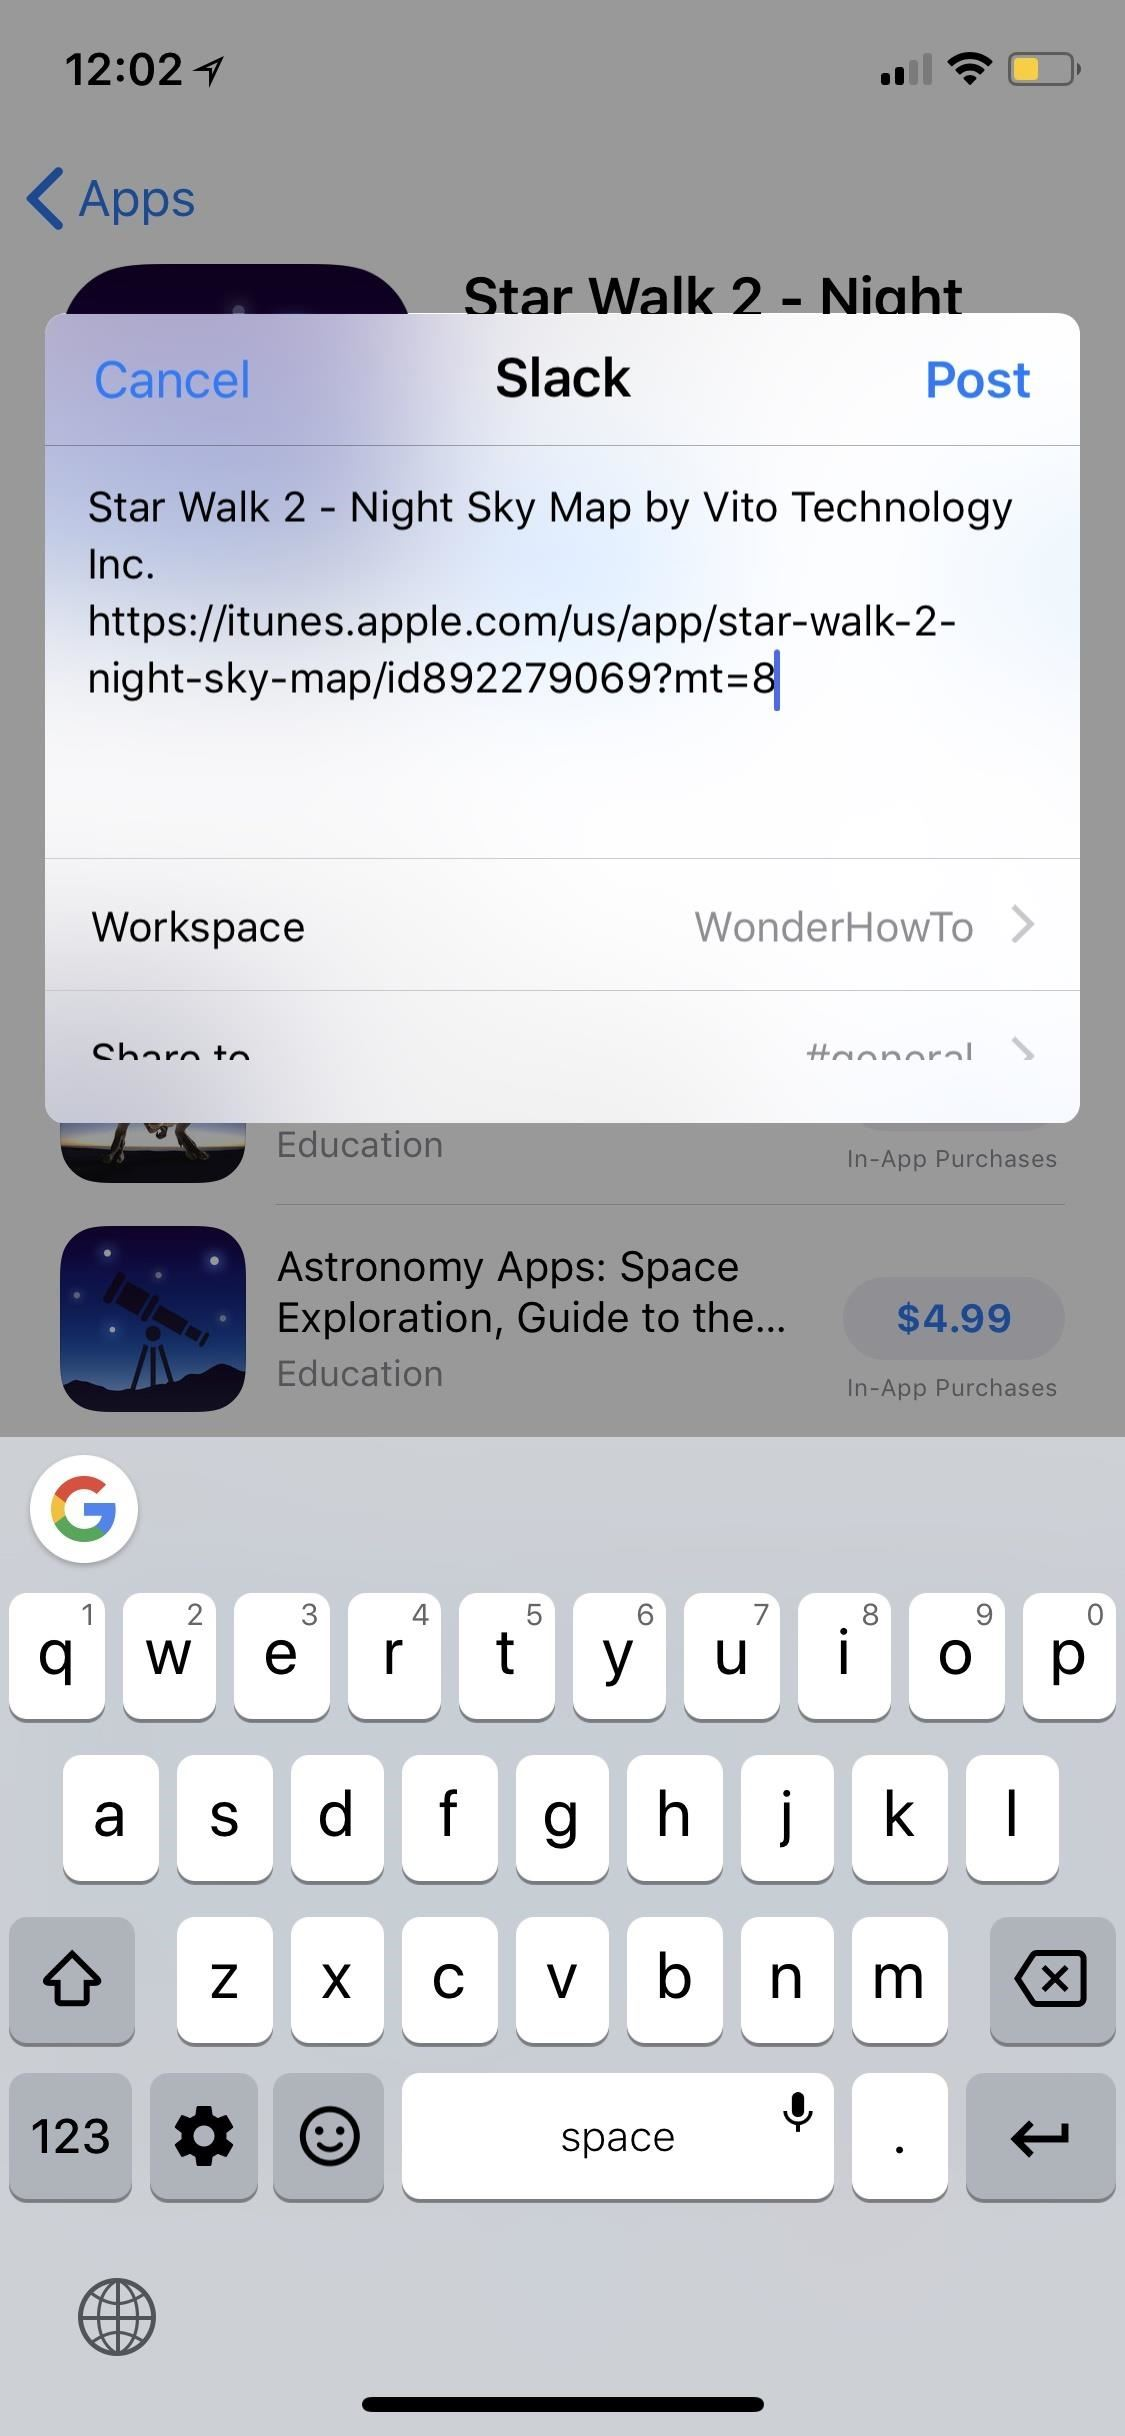 Missing the App Store's Wish List? This Is the Best Alternative for